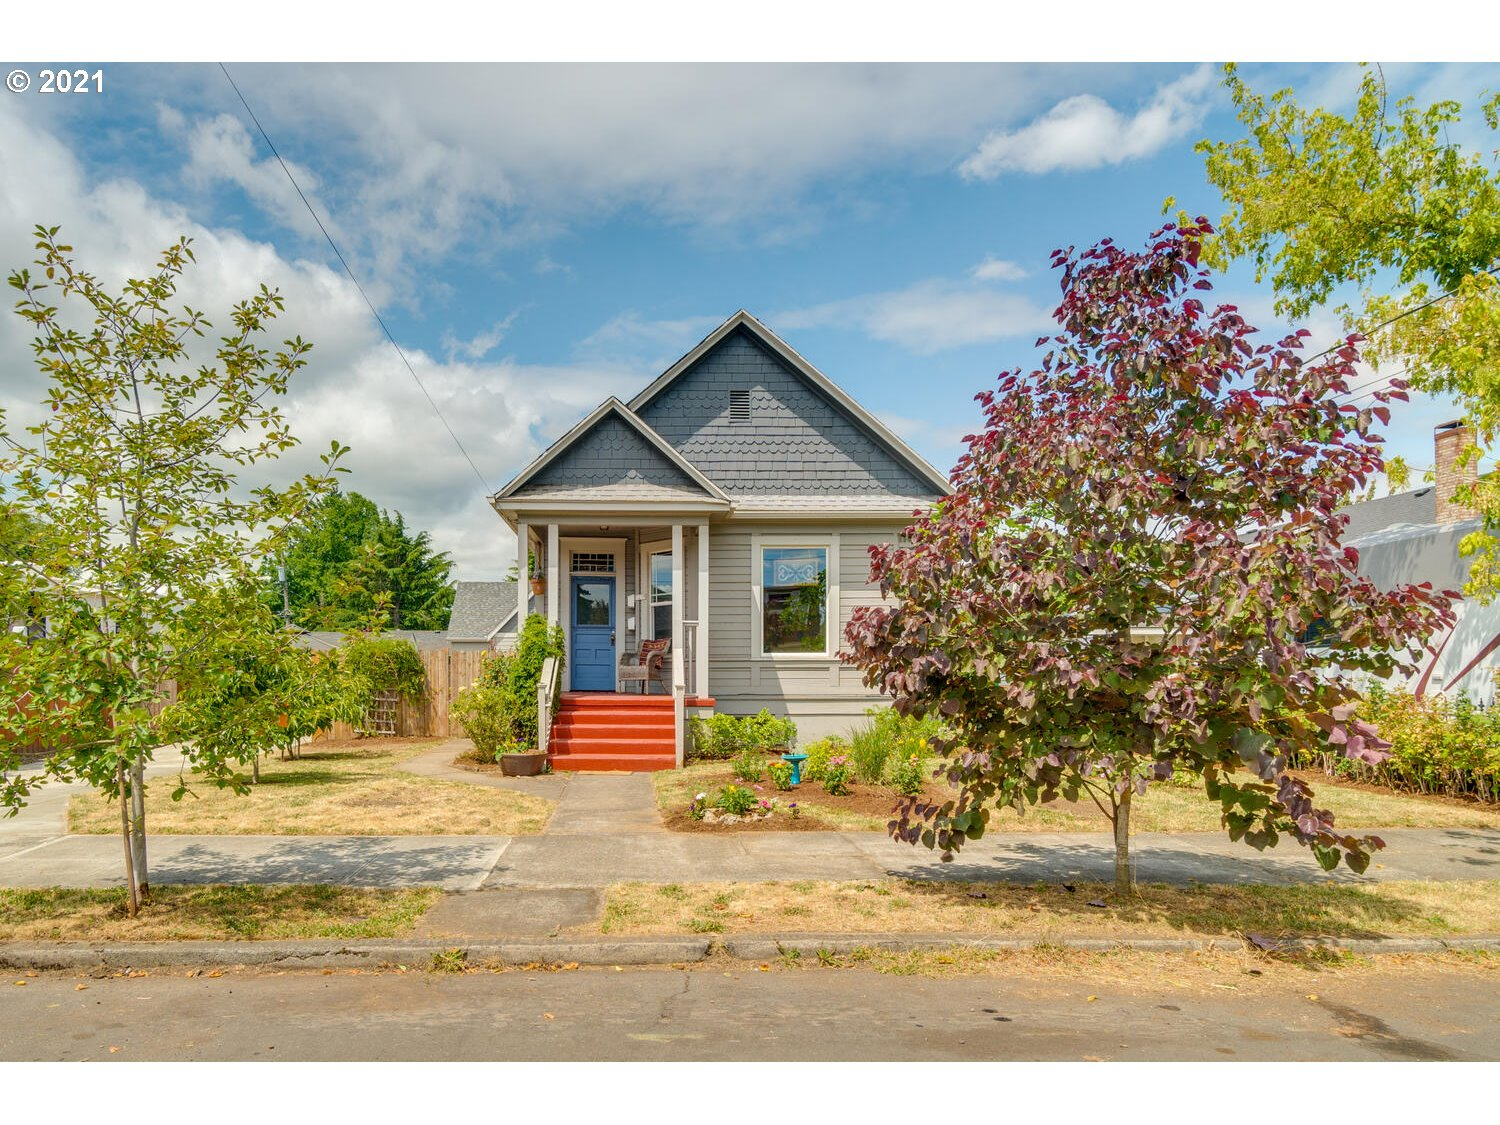 """Colorful 1904 Victorian with high ceilings, hardwood floors, remodeled quartz counter kitchen and ADU above 2 car garage! ADU currently rented at $1,525, (possession subject to current tenancy) was built for AirBnb in mind. Main house has 2 beds on main floor and 2 beds/baths down, 4 total full baths! (inc. ADU). Original vintage mill work, hardware and 48"""" pocket door! Nestled just 4-5 blocks from hot St. John's! Perfect for dual living and more. FA gas heat and on-demand water heaters."""